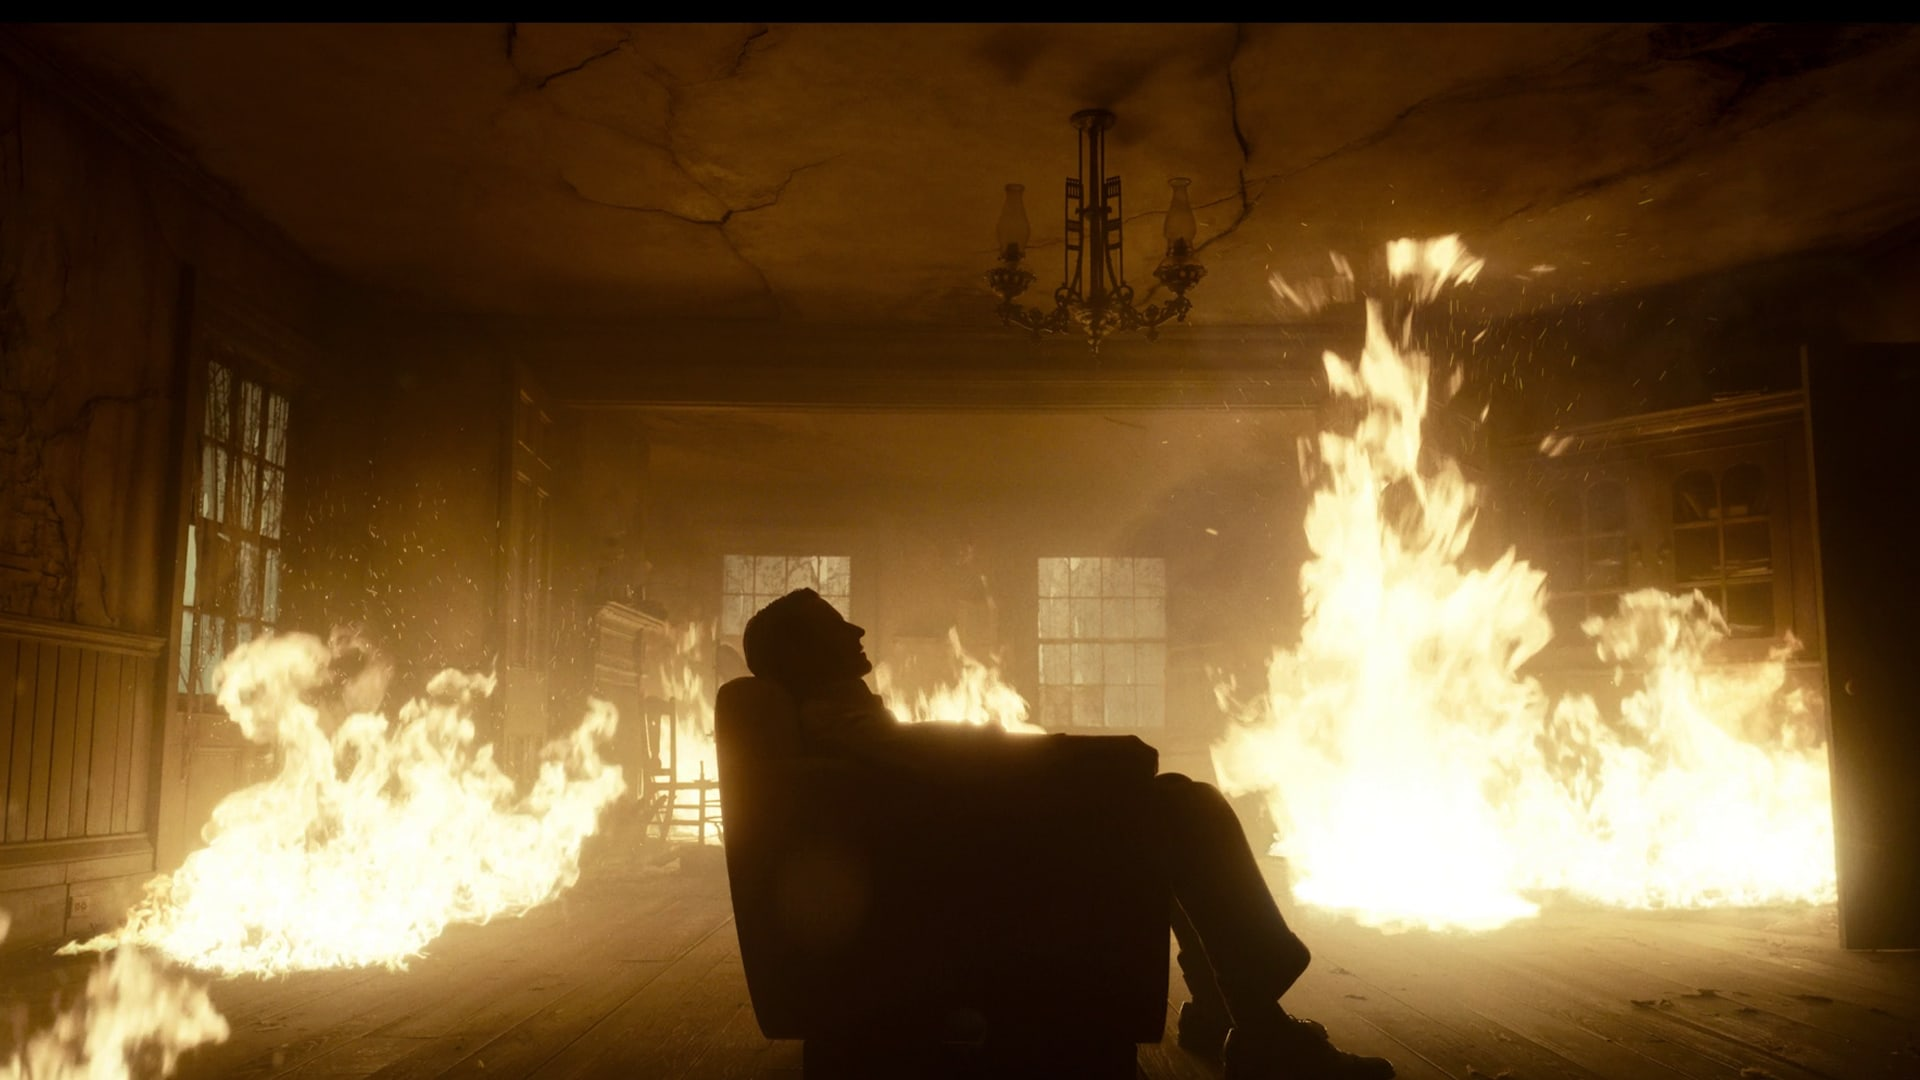 A man sits in a burning room from the movie Nightmare Alley